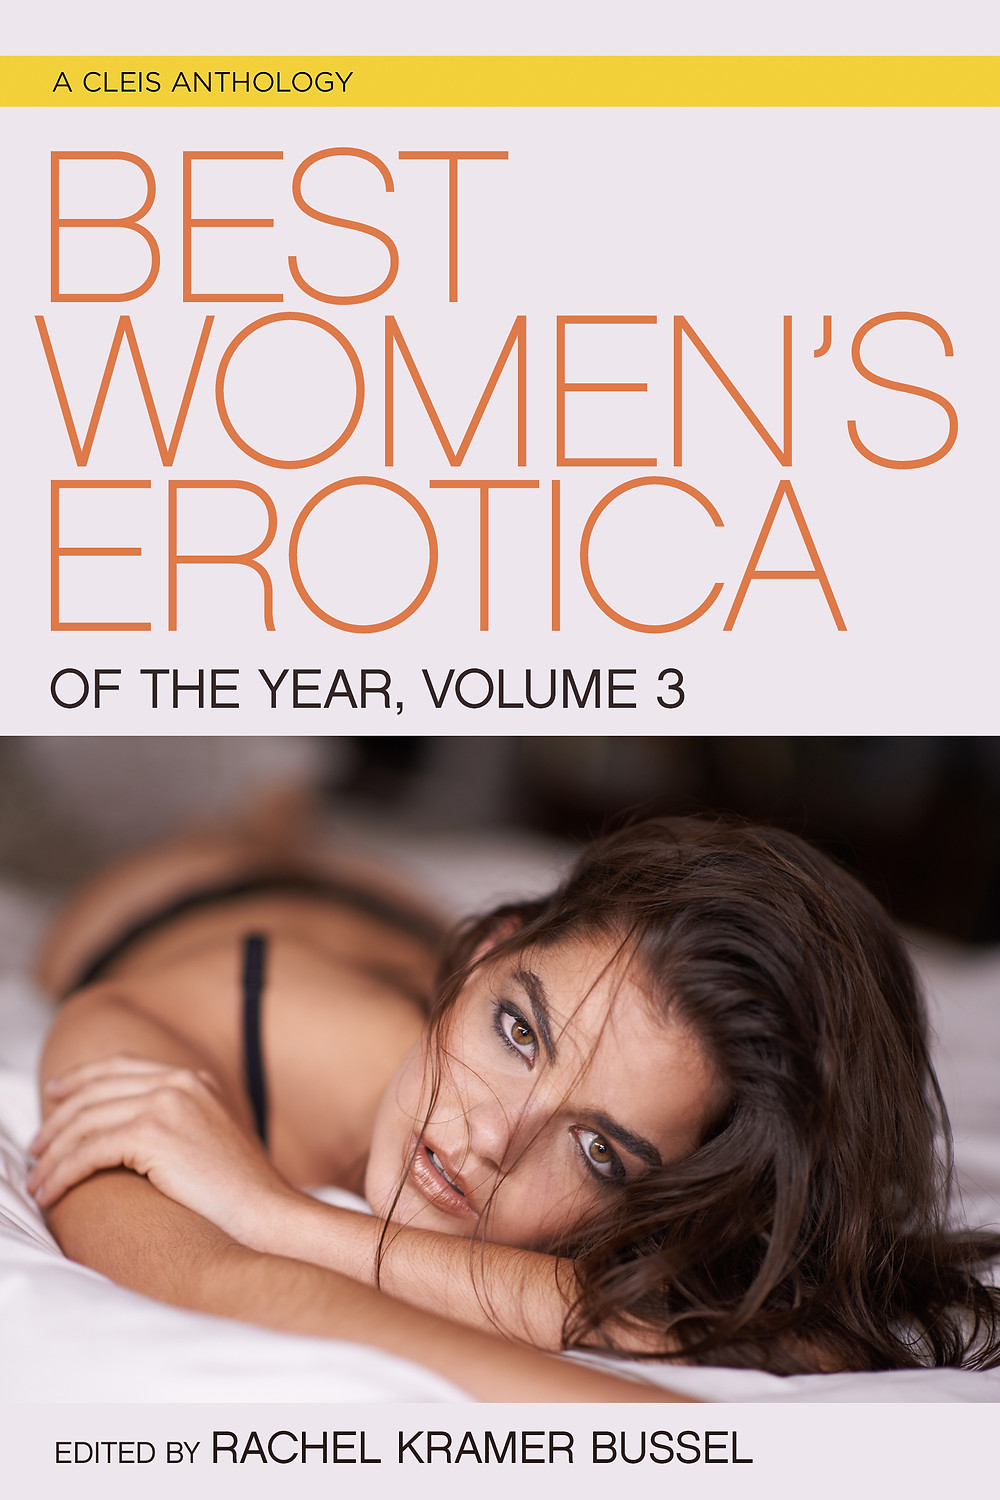 woman in bra and panties staring at camera erotica book cover